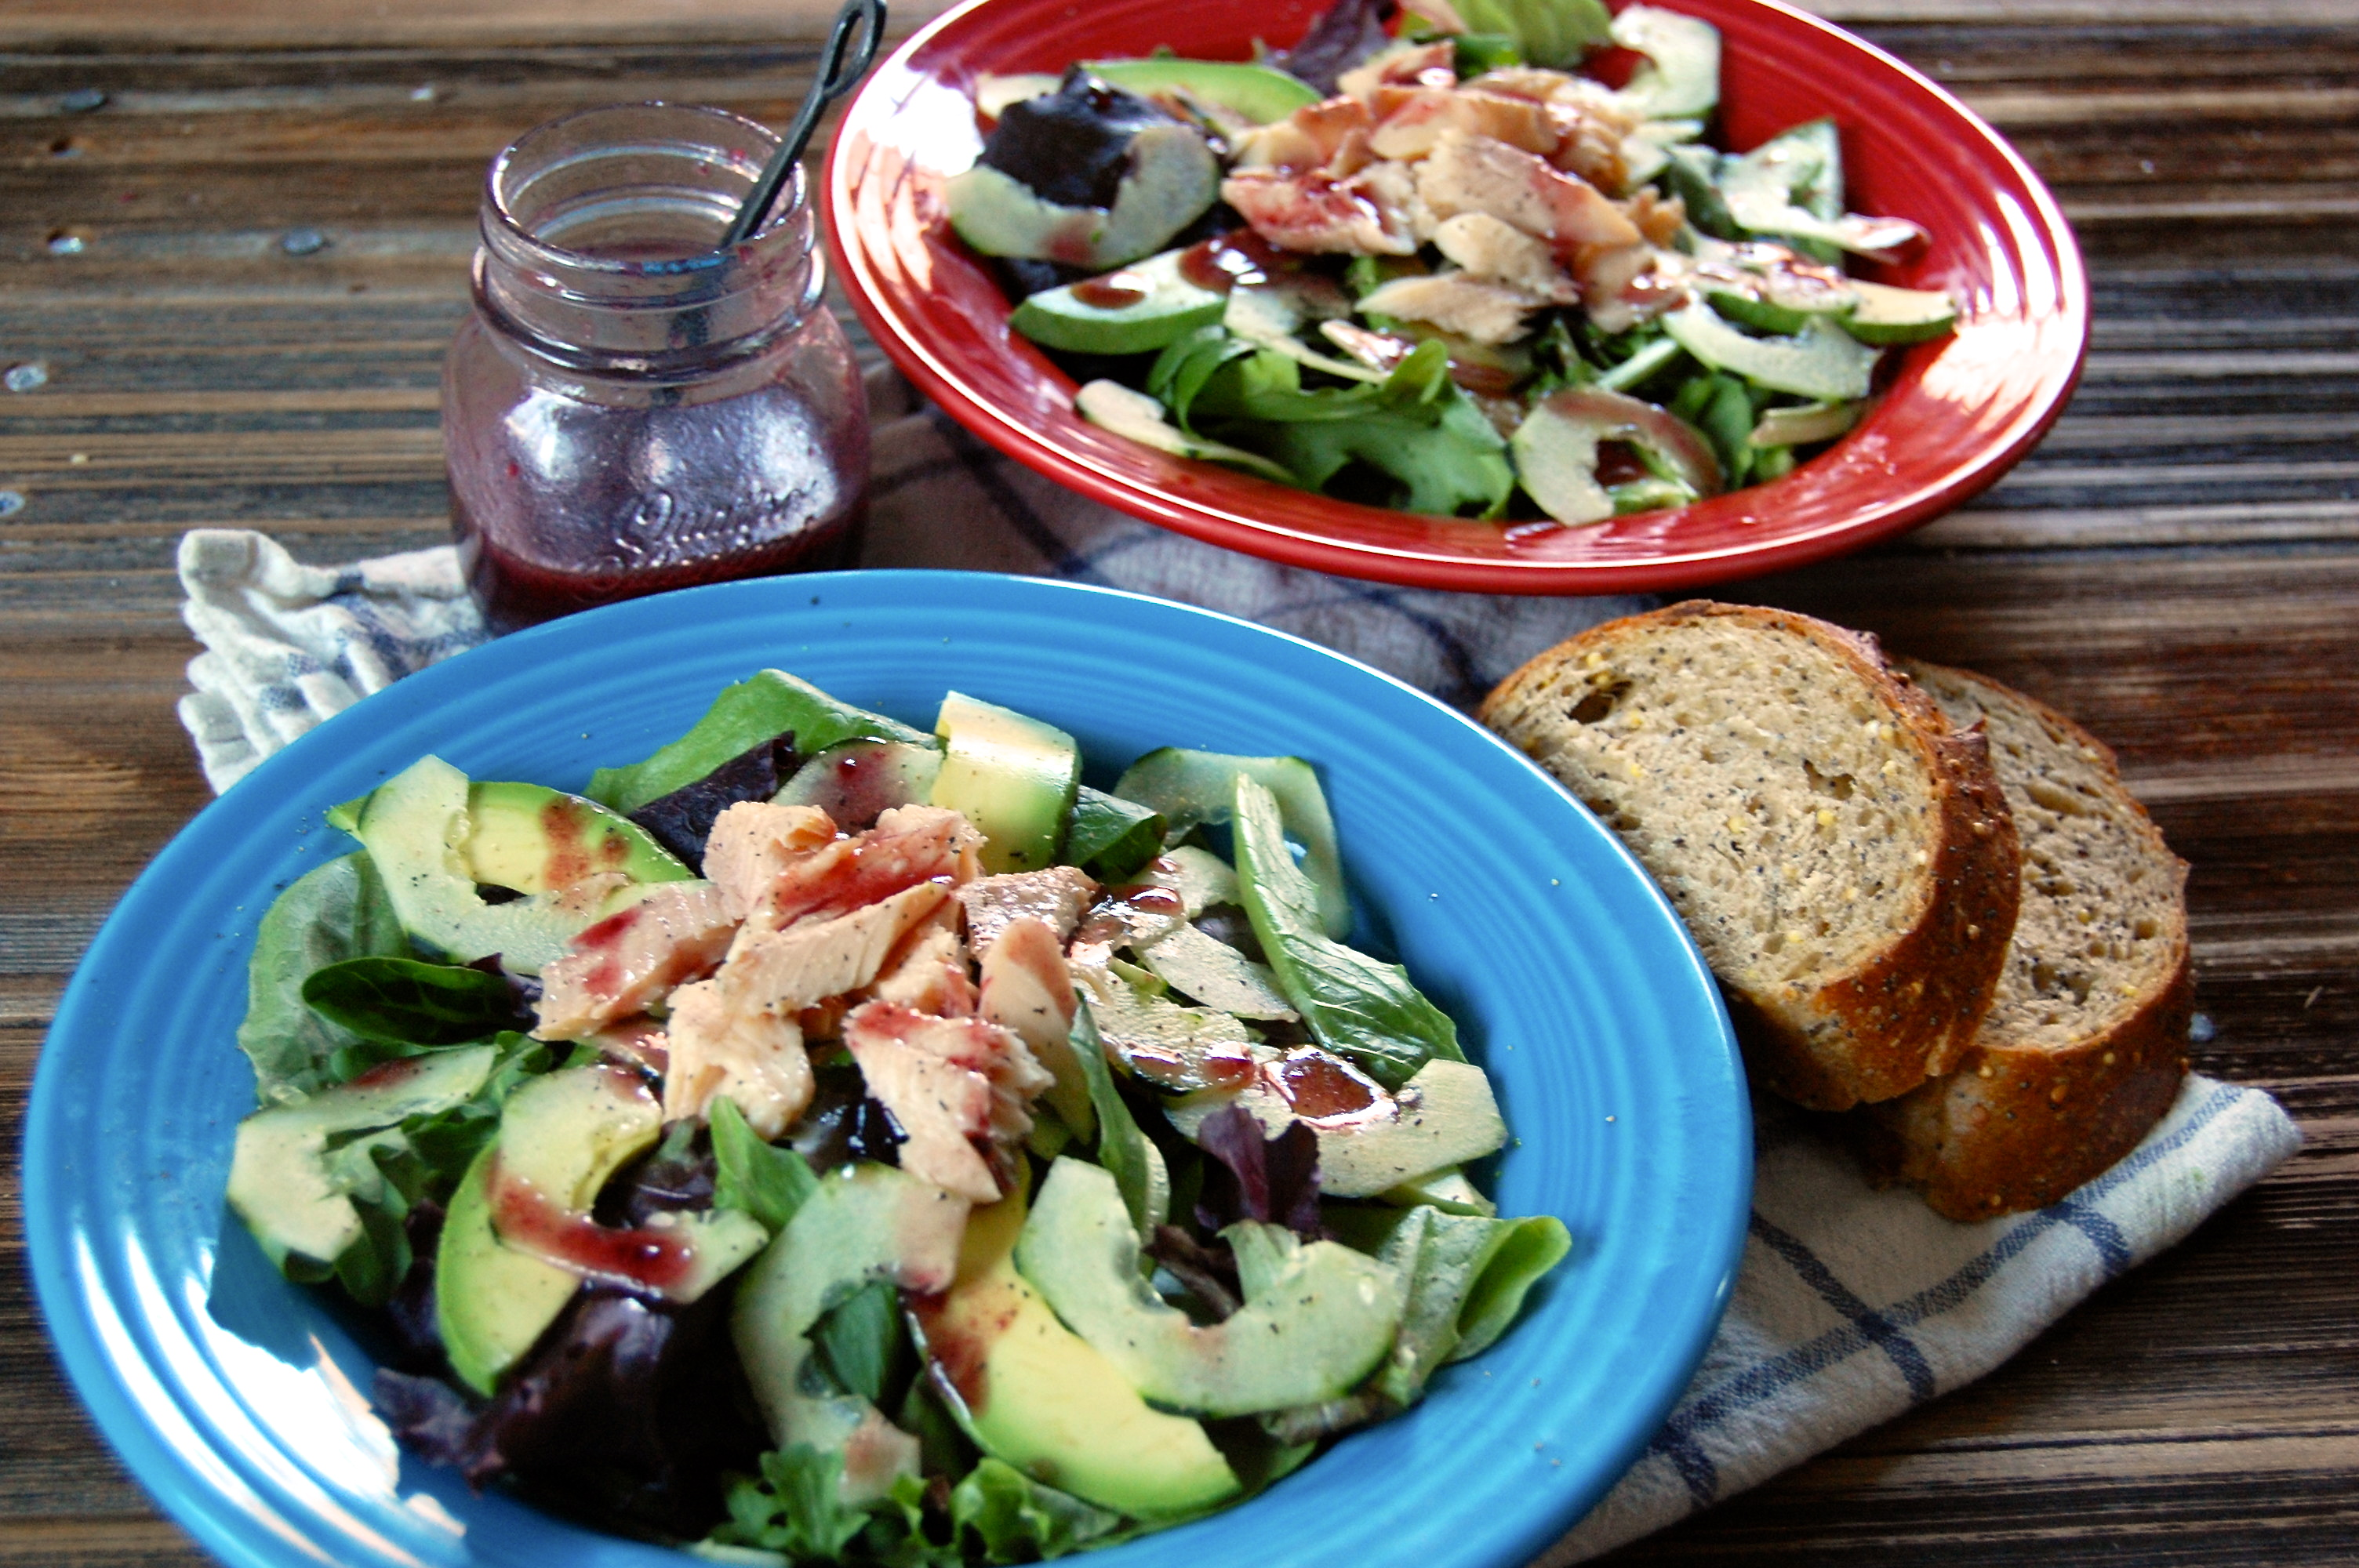 Smoked Trout Salad with Blackberry Vinaigrette